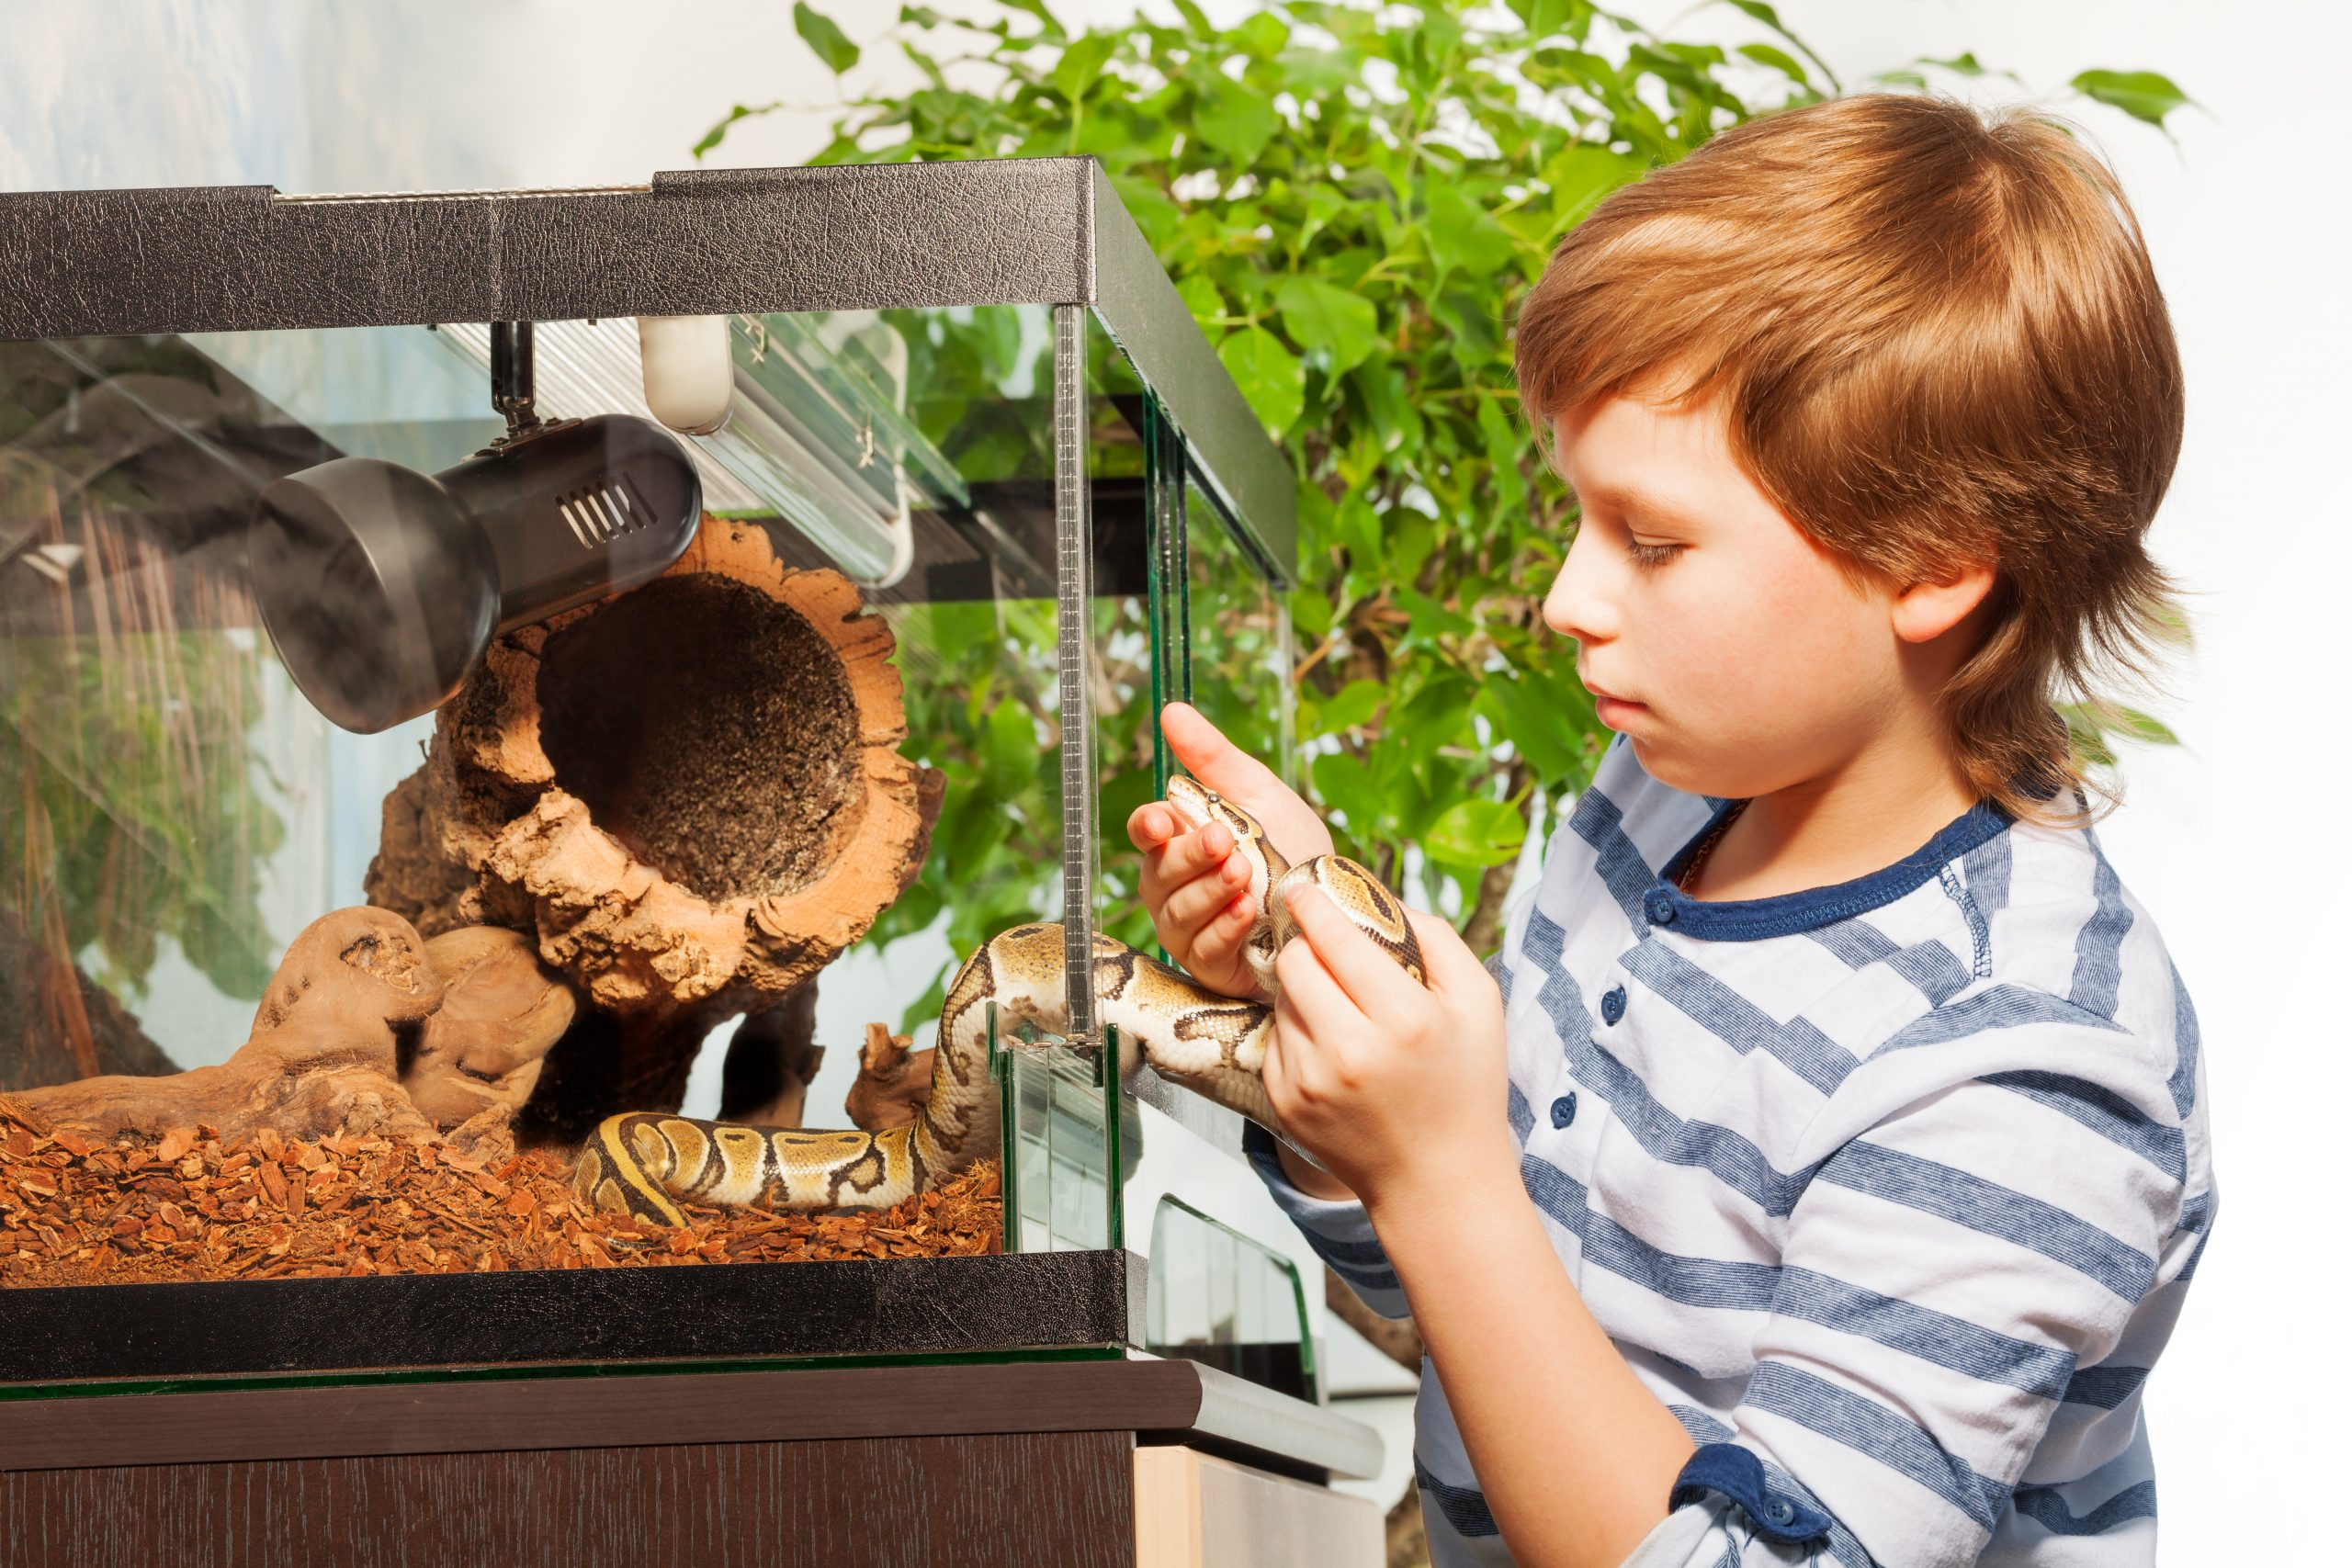 Brave young boy getting Royal or Ball python out of terrarium and playing with it